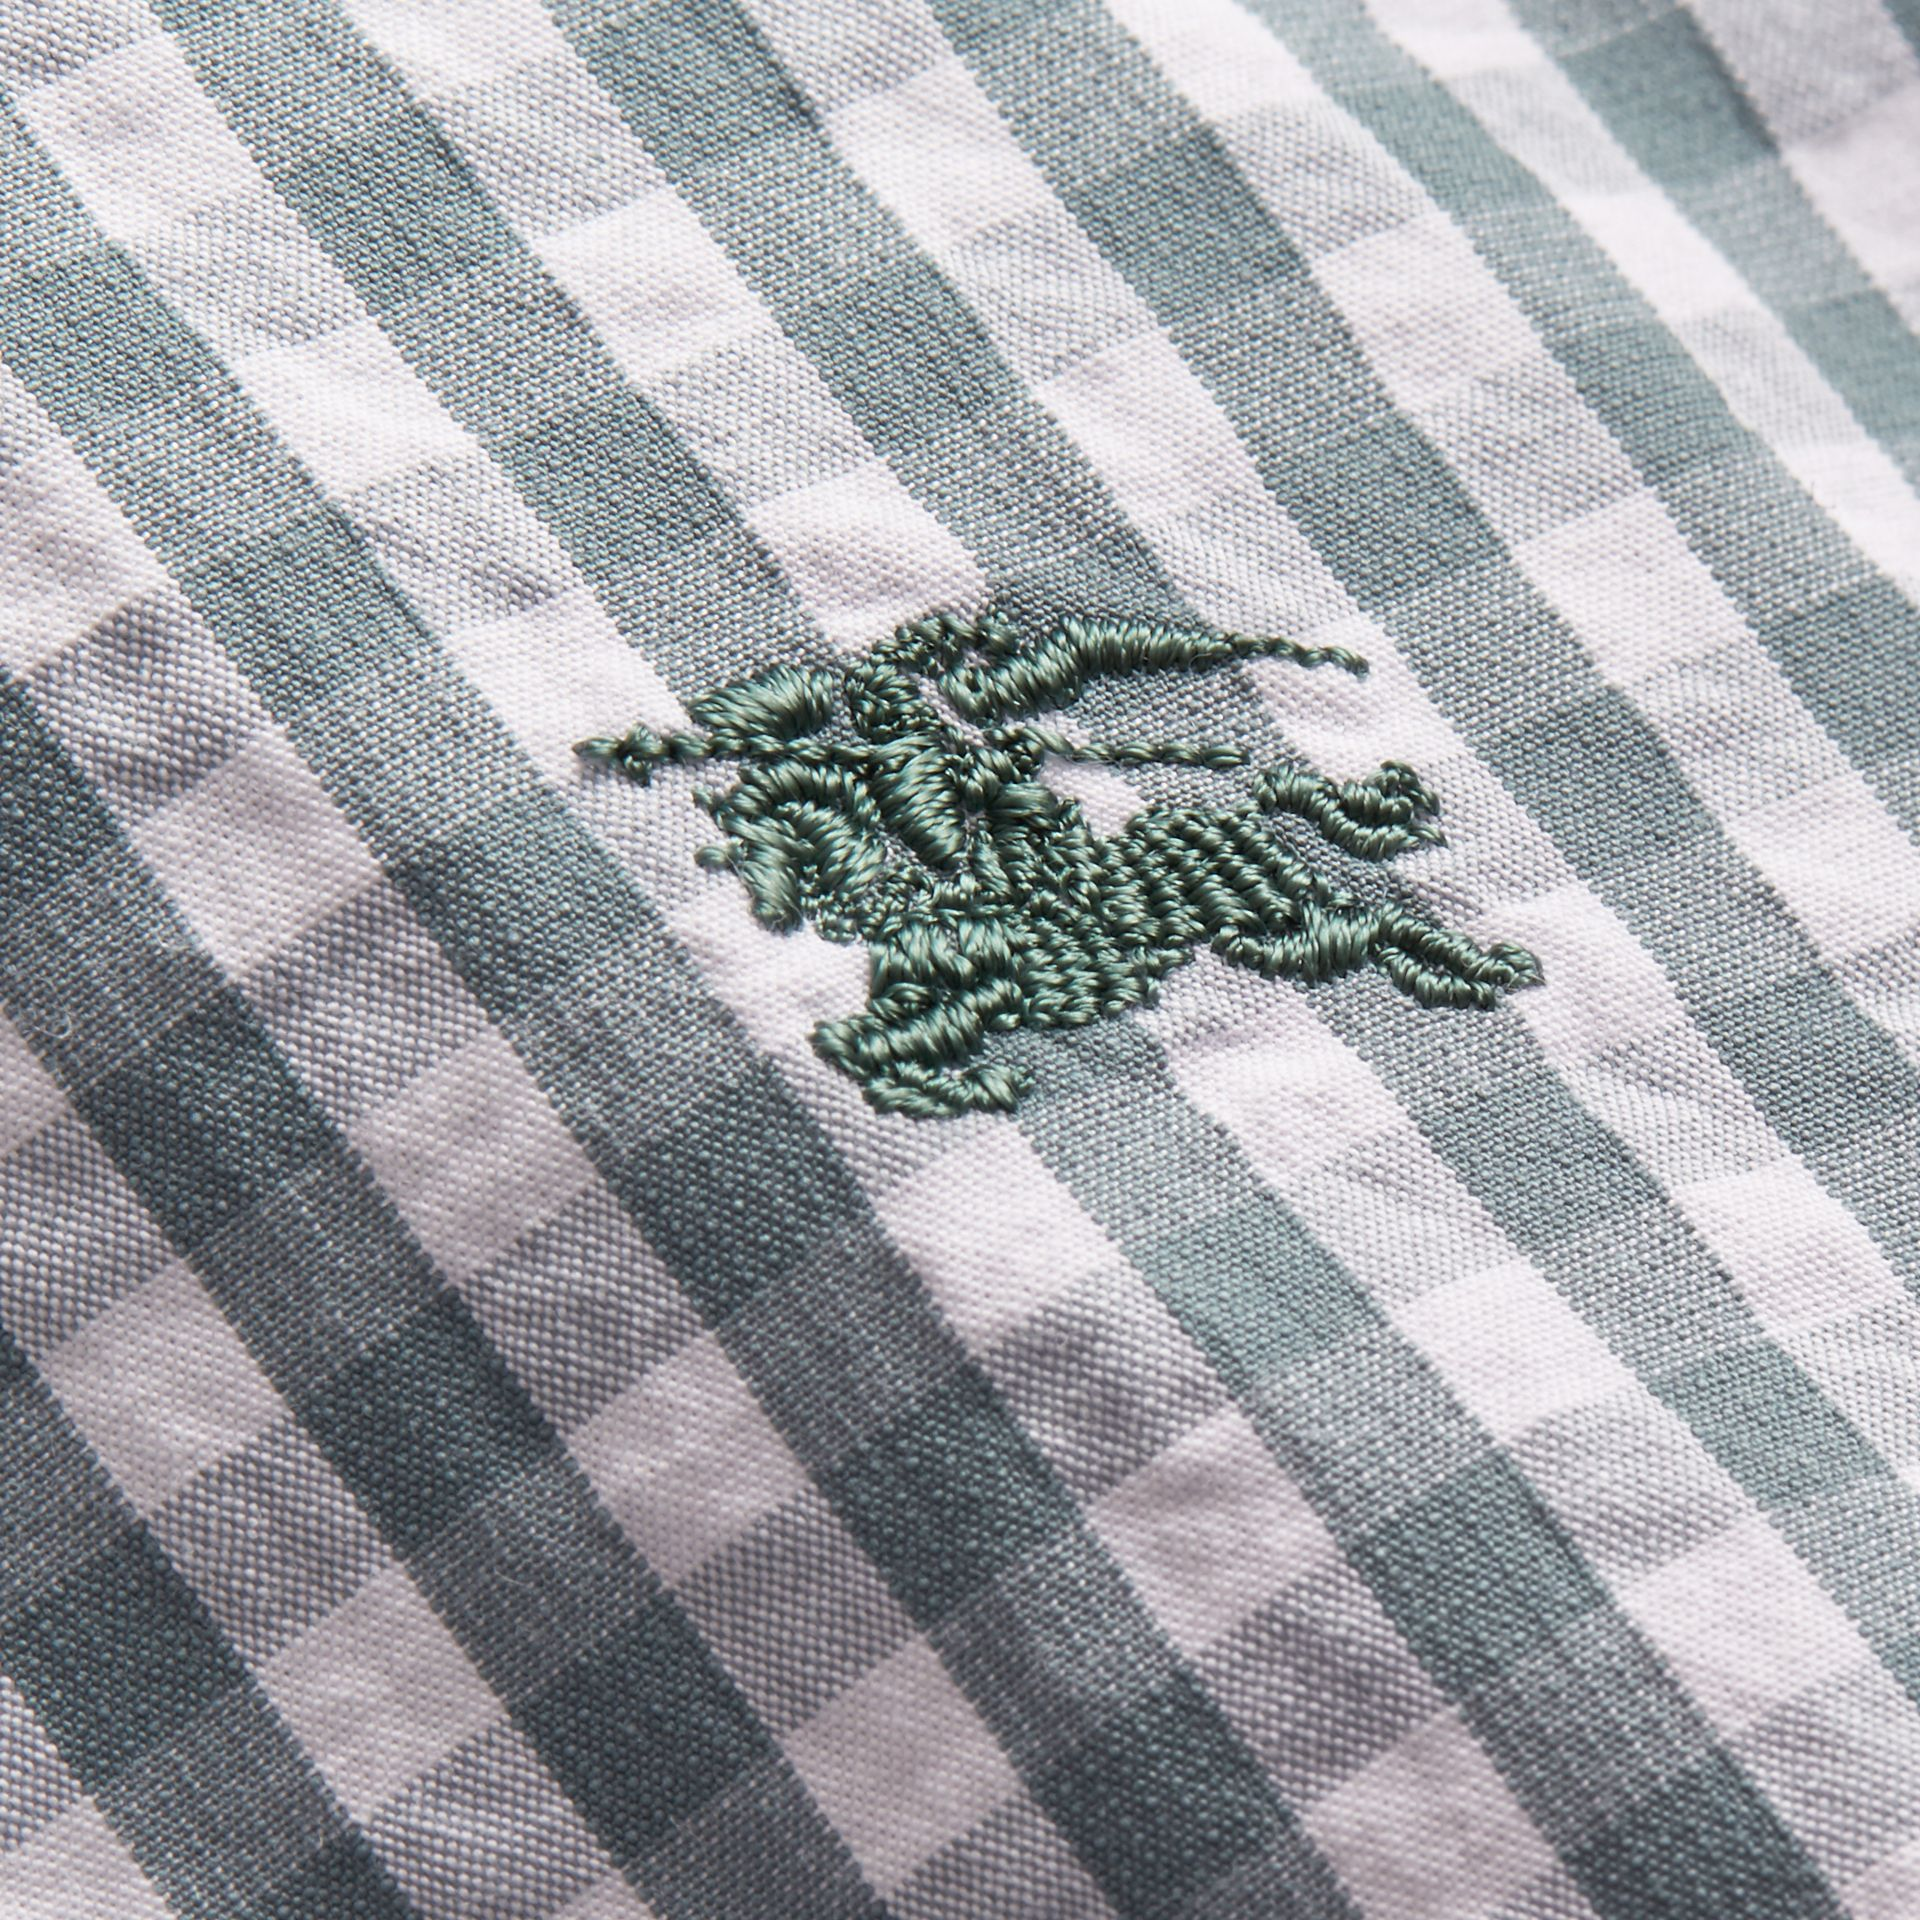 Gingham Cotton Poplin Shirt with Check Detail in Dusty Teal Blue - Men | Burberry - gallery image 2